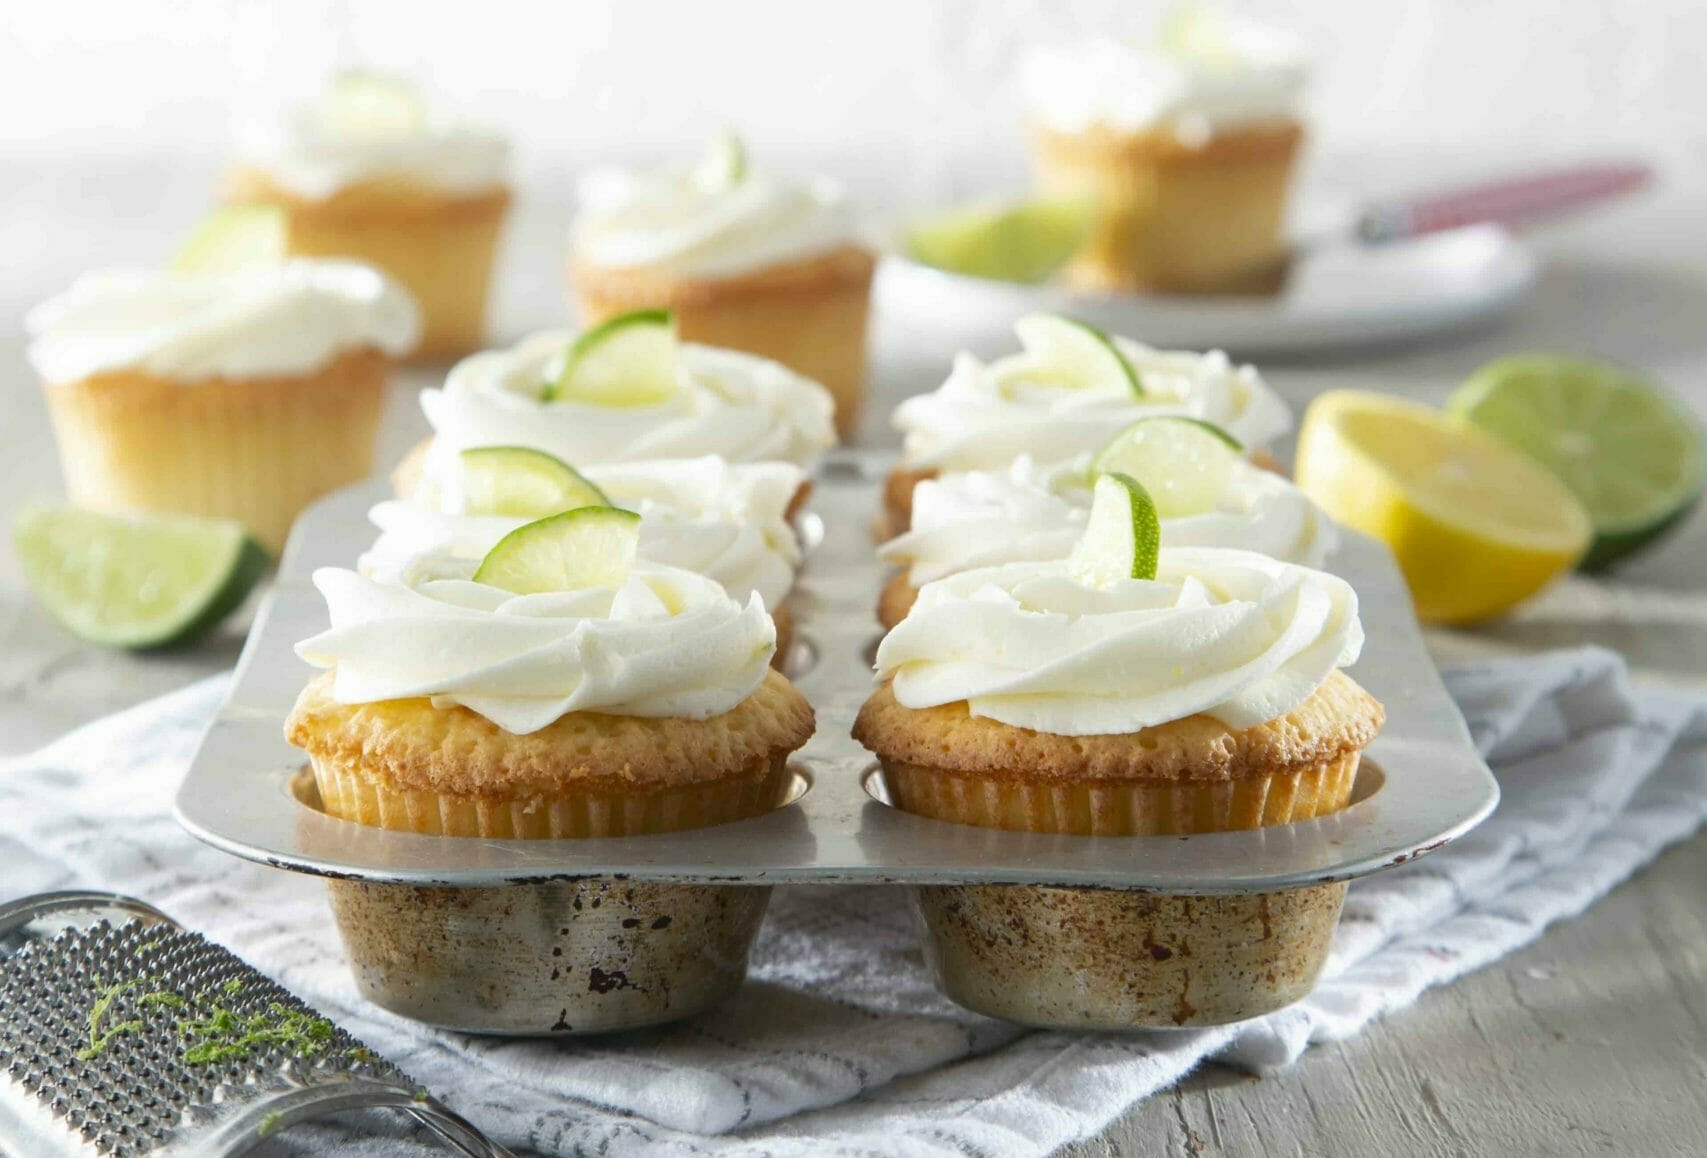 7-Up Cake Cupcakes In Muffin Tin